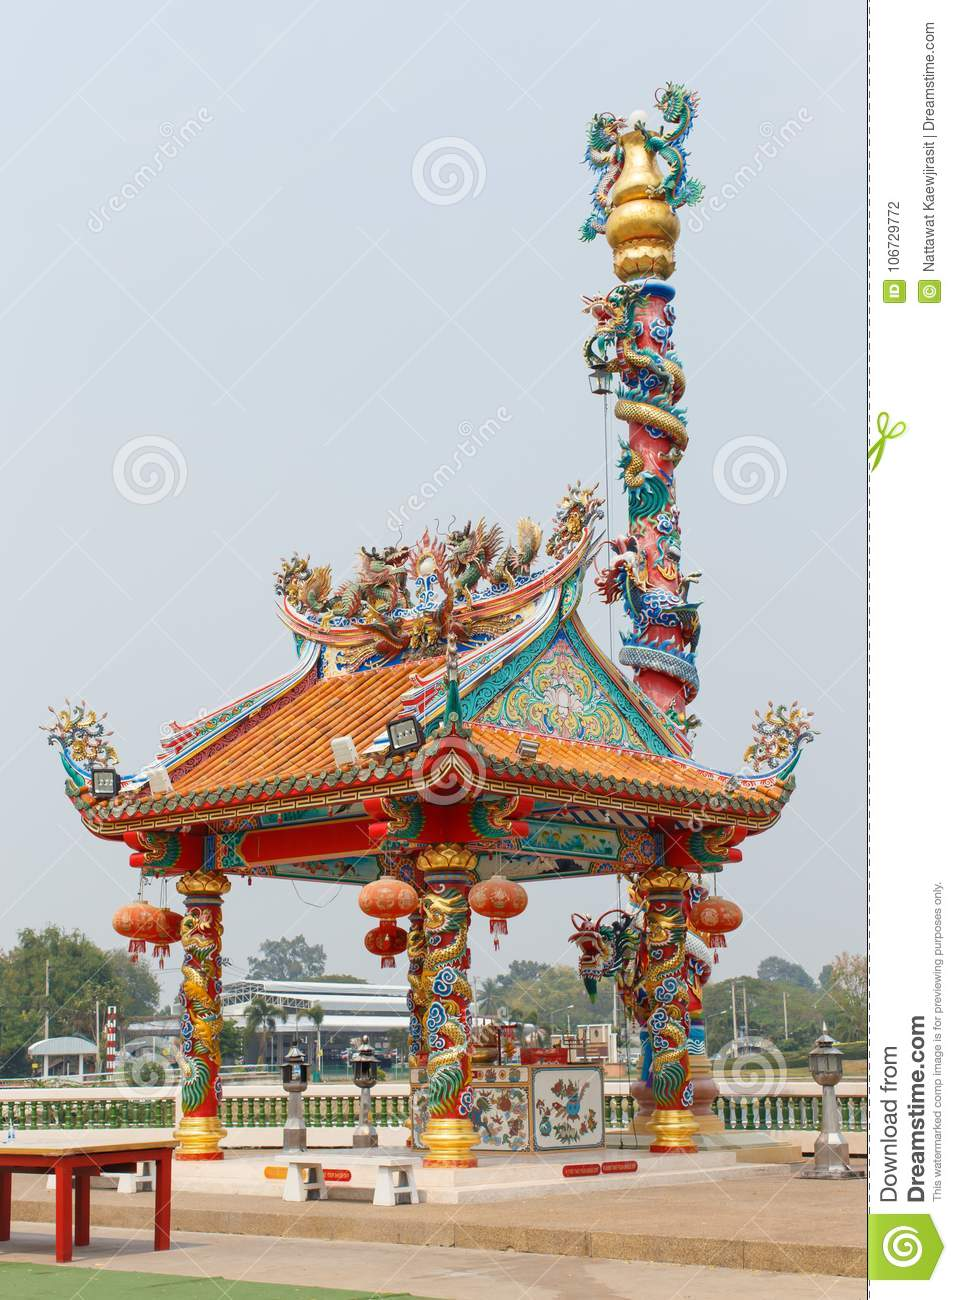 Chinese Temple Incense Detail Art Stock Photo Image Of China Religion 106729772